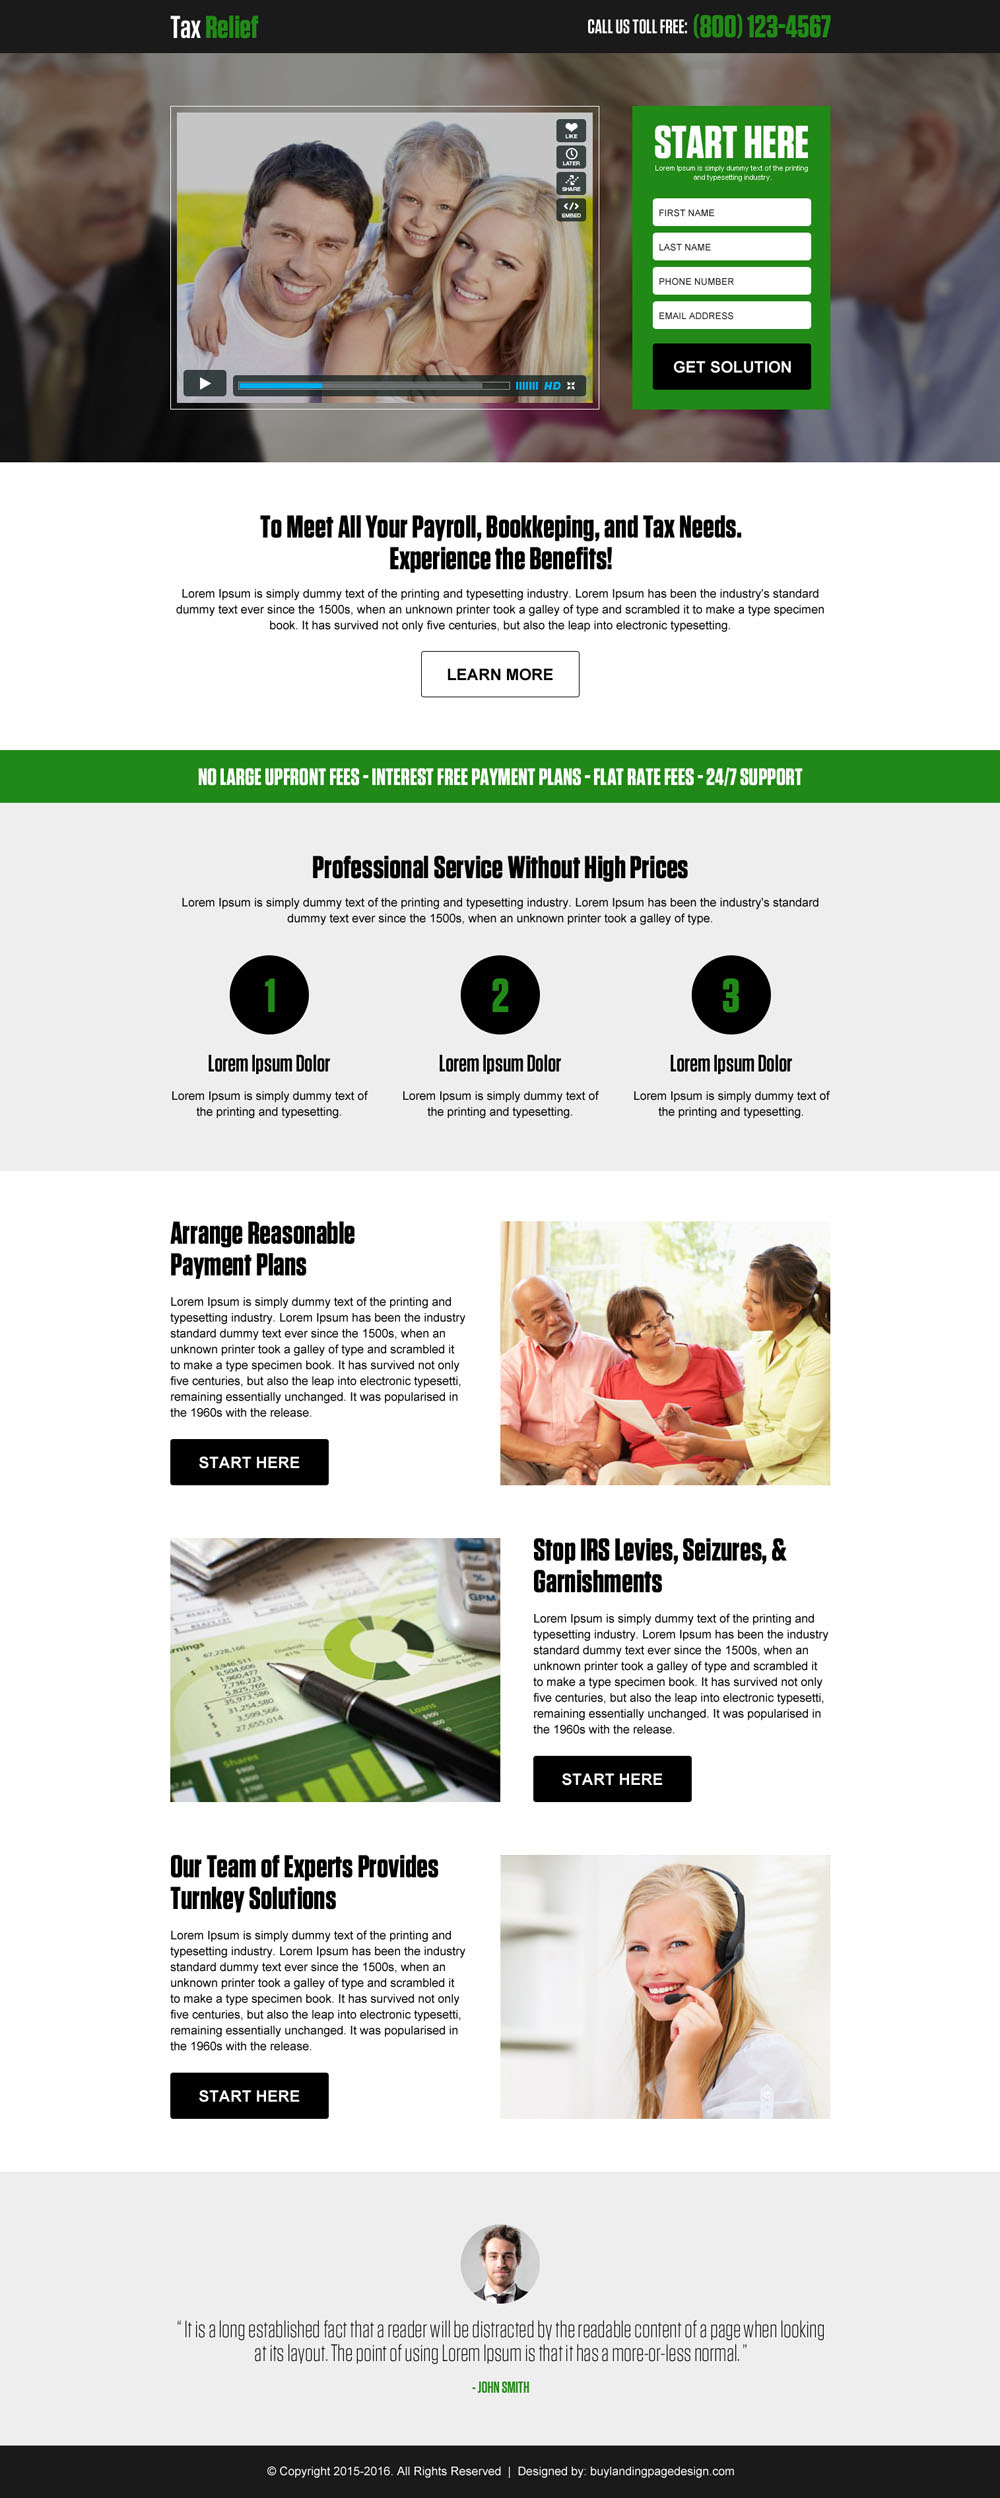 tax-relief-lead-generation-converting-video-landing-page-design-002